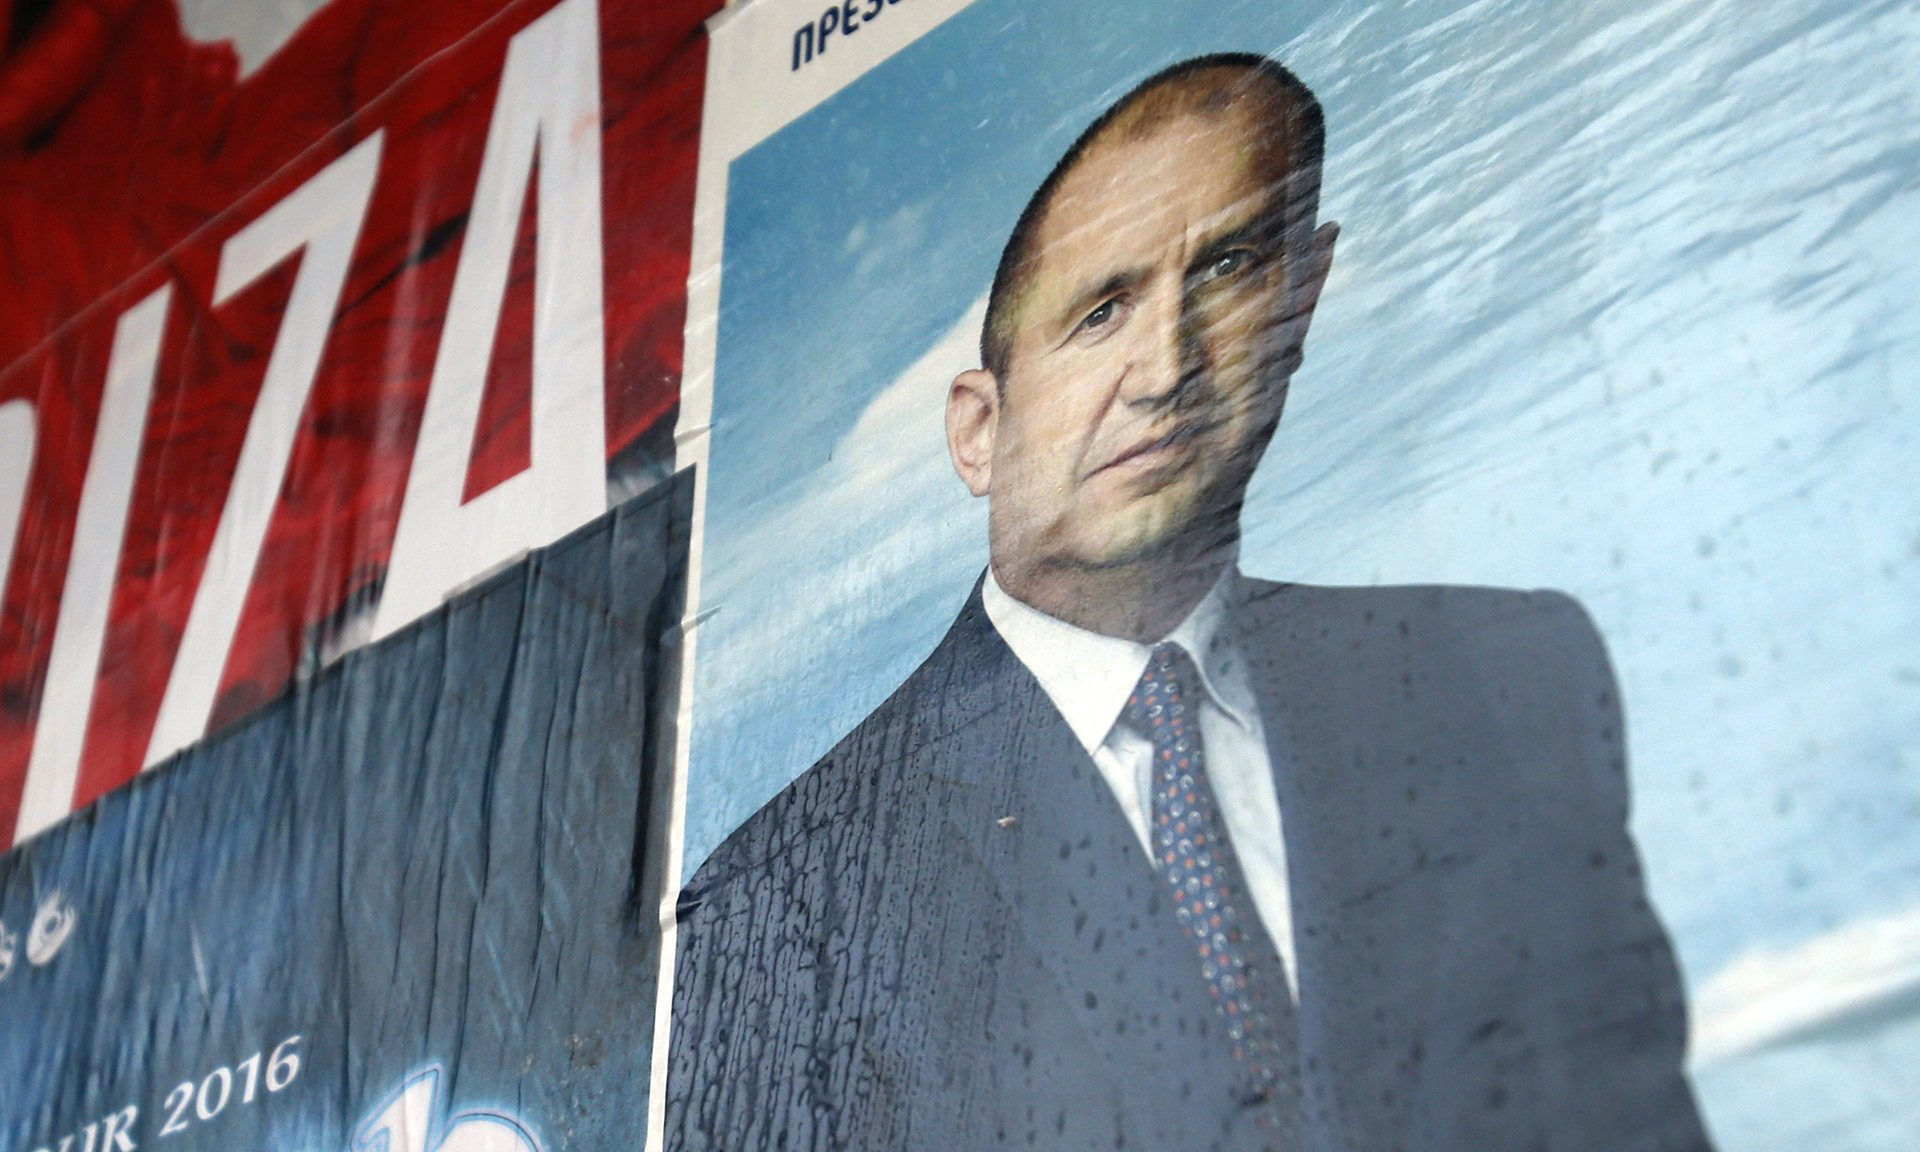 'Pro-Russia' Presidential Candidates Win in Bulgaria and Moldova